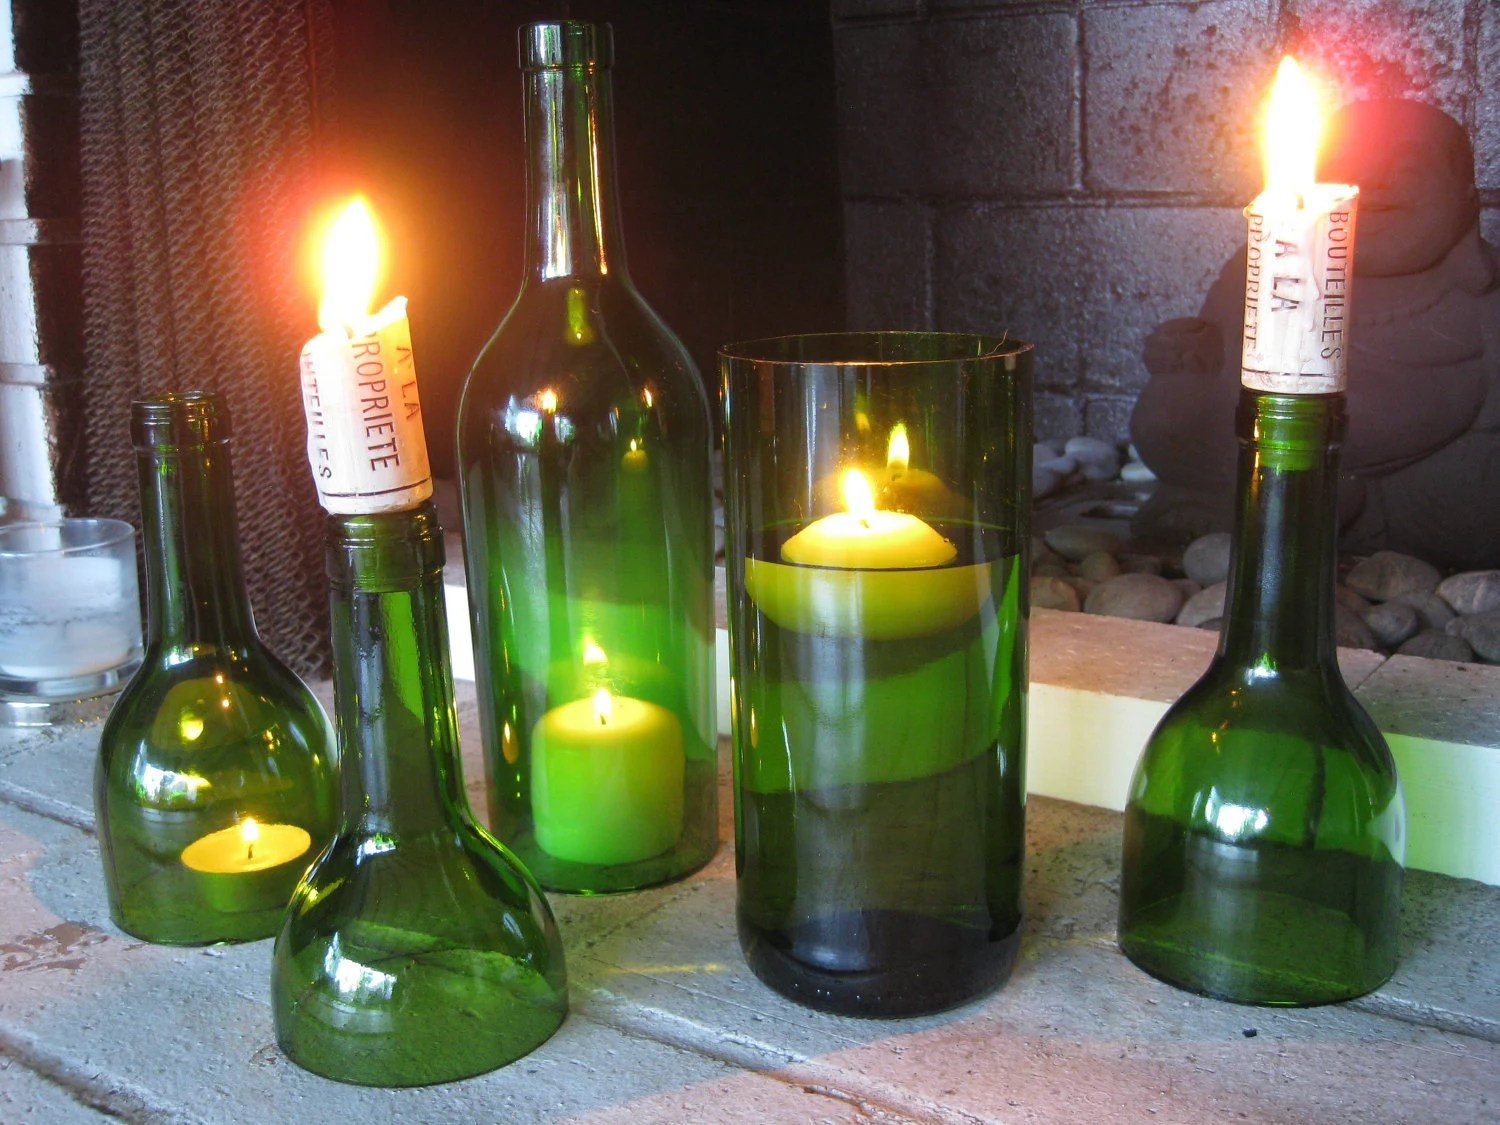 Empty Wine Bottle Holder Set Of Emerald Green Wine Bottle Candle By Hauterubbish On